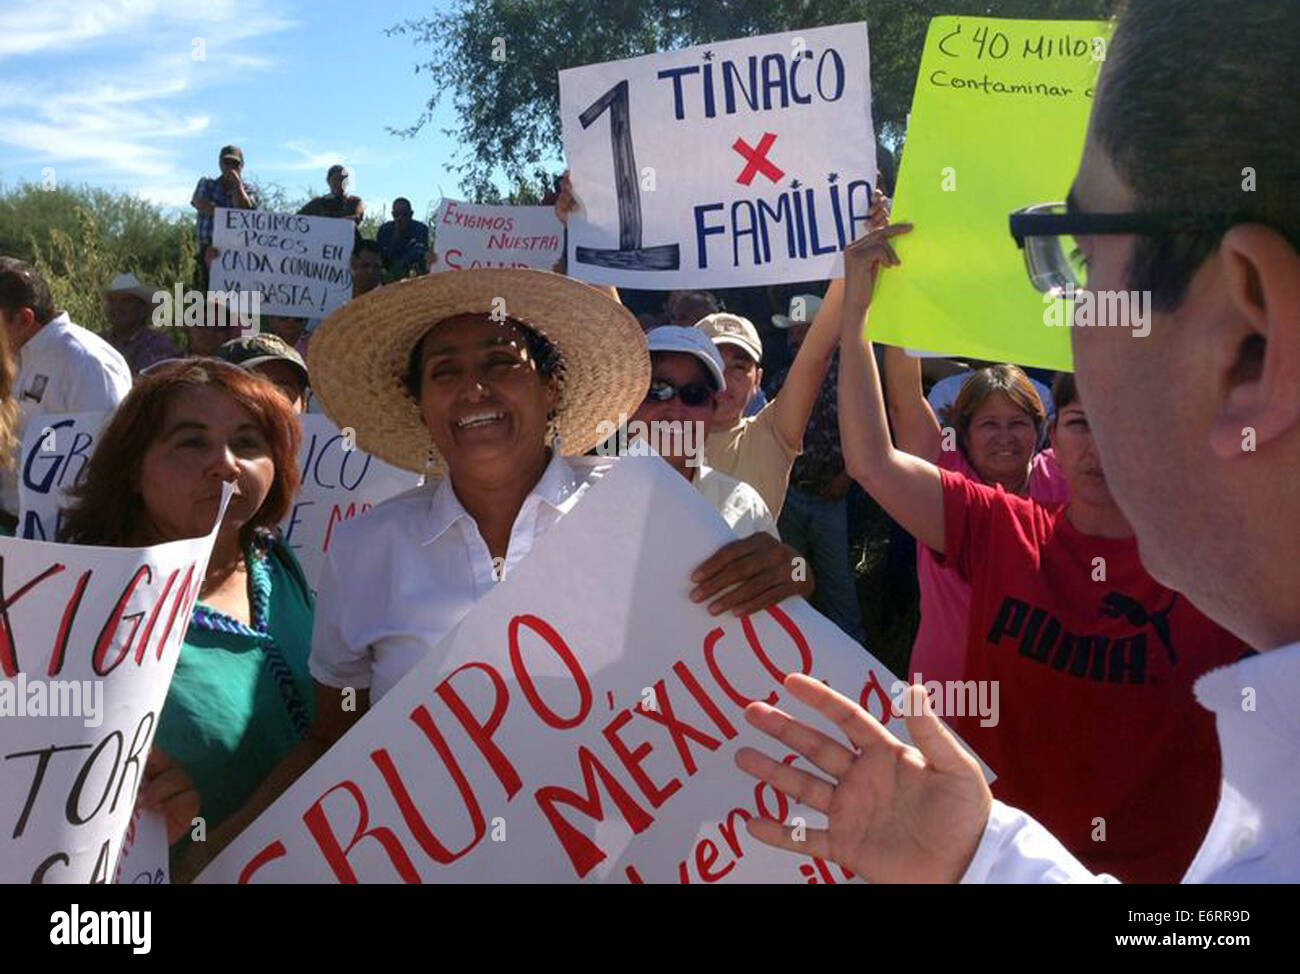 (140830) -- SONORA, Aug. 30, 2014 (Xinhua) -- Image taken on Aug. 27, 2014, shows people taking part in a protest - Stock Image